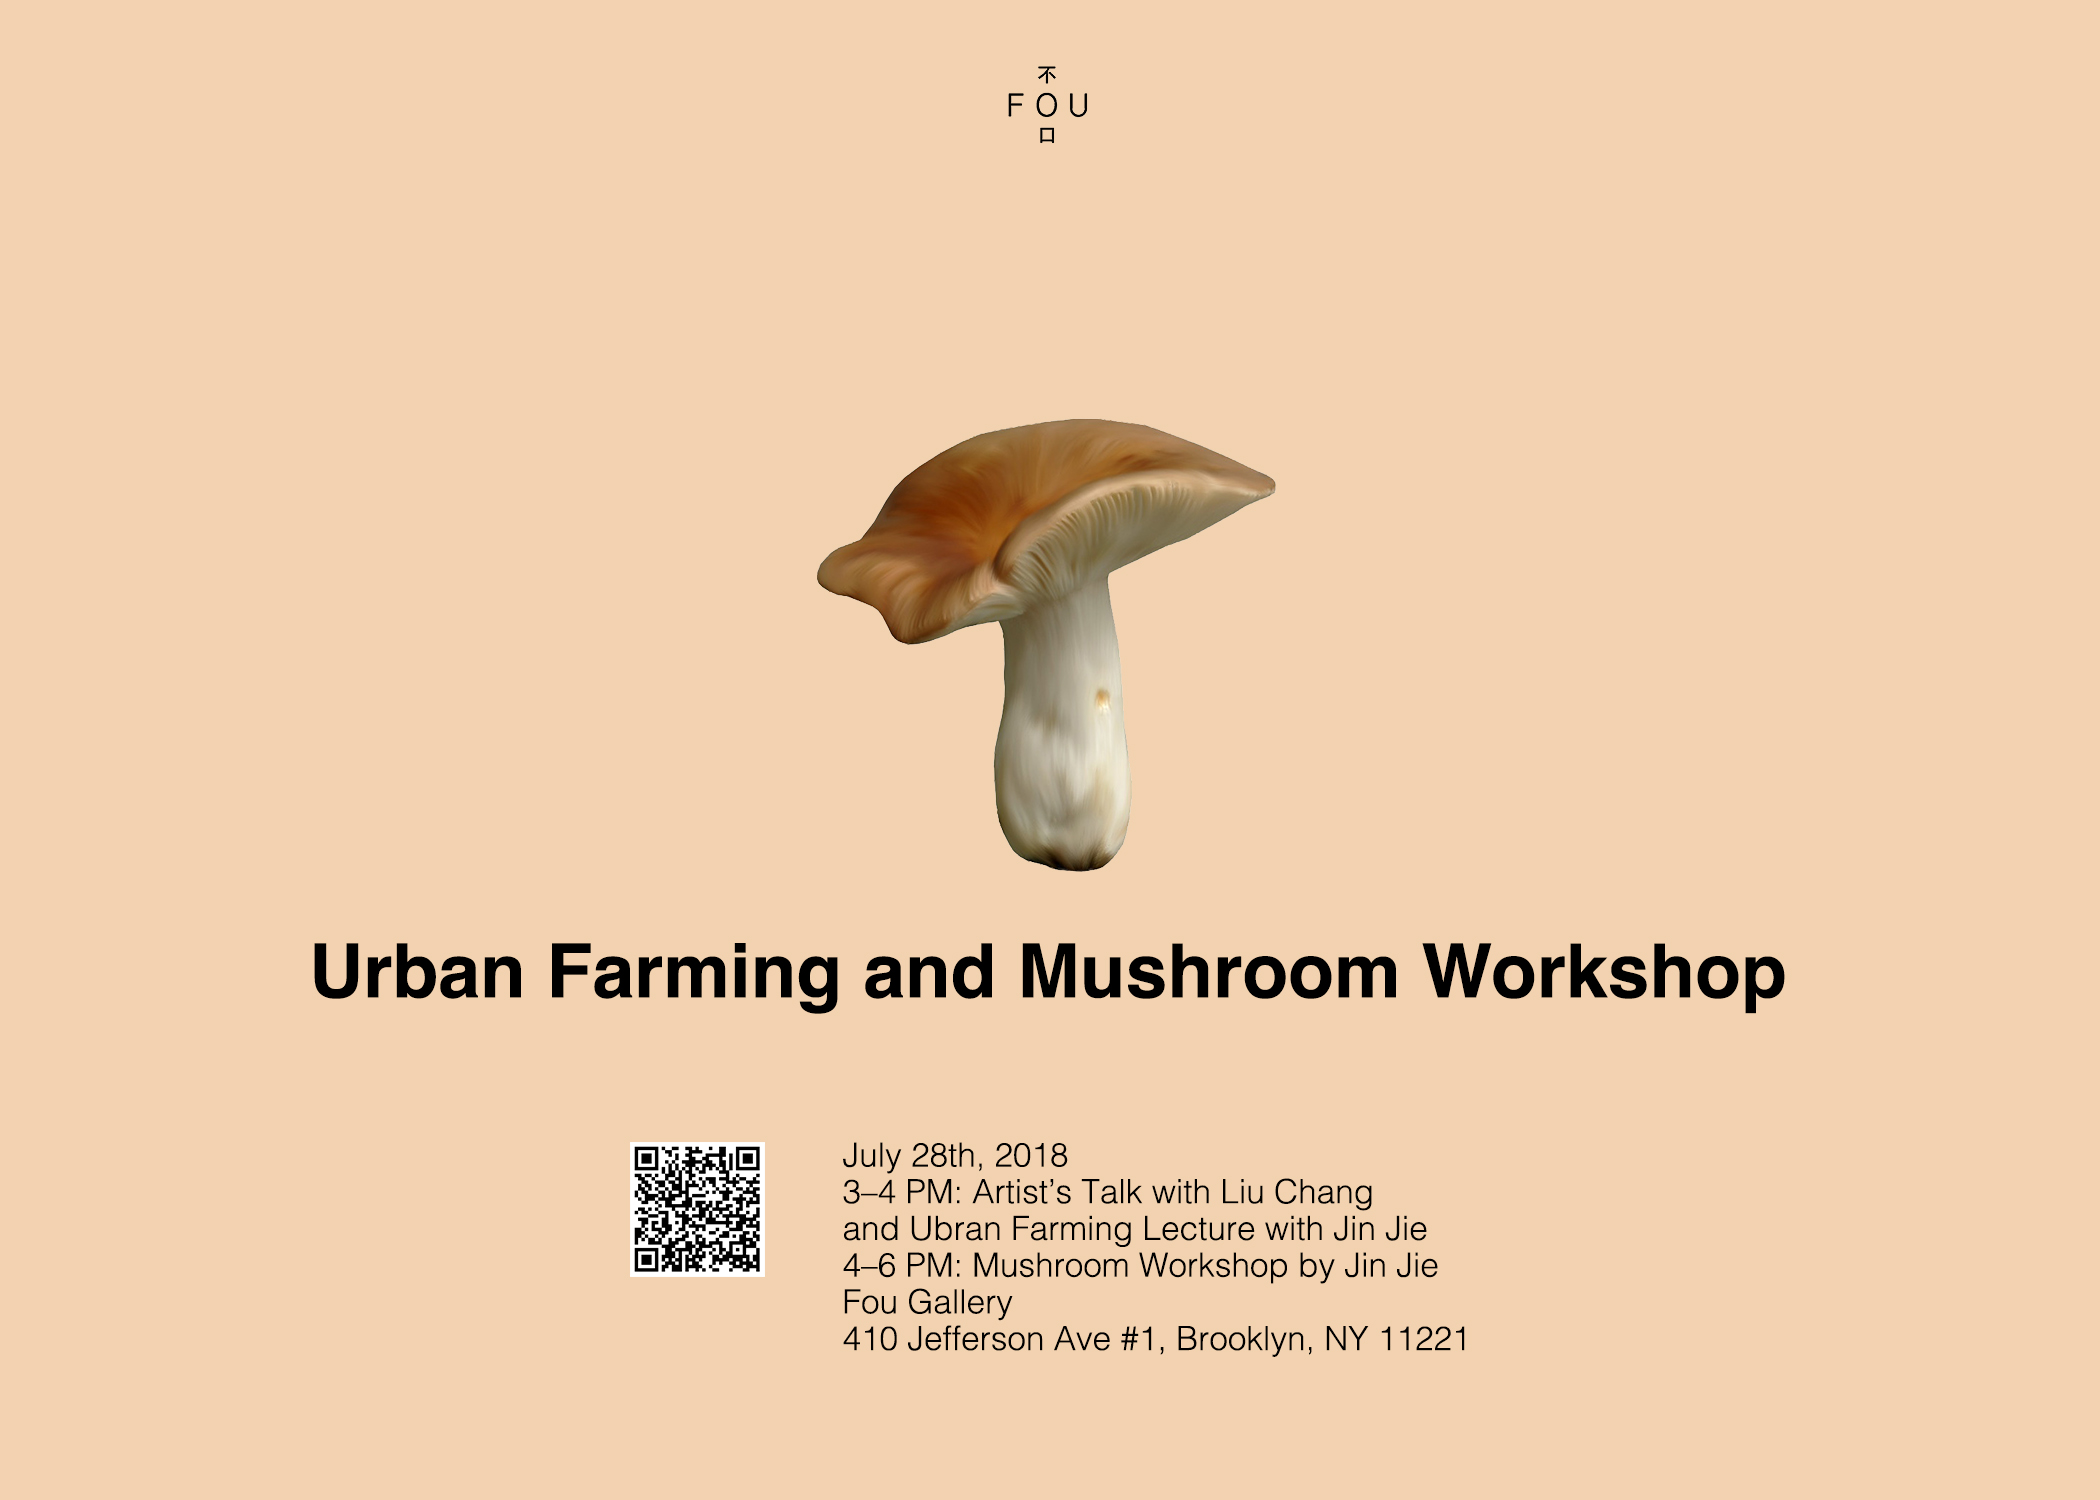 mushroom workshop Poster with QR Code.jpg